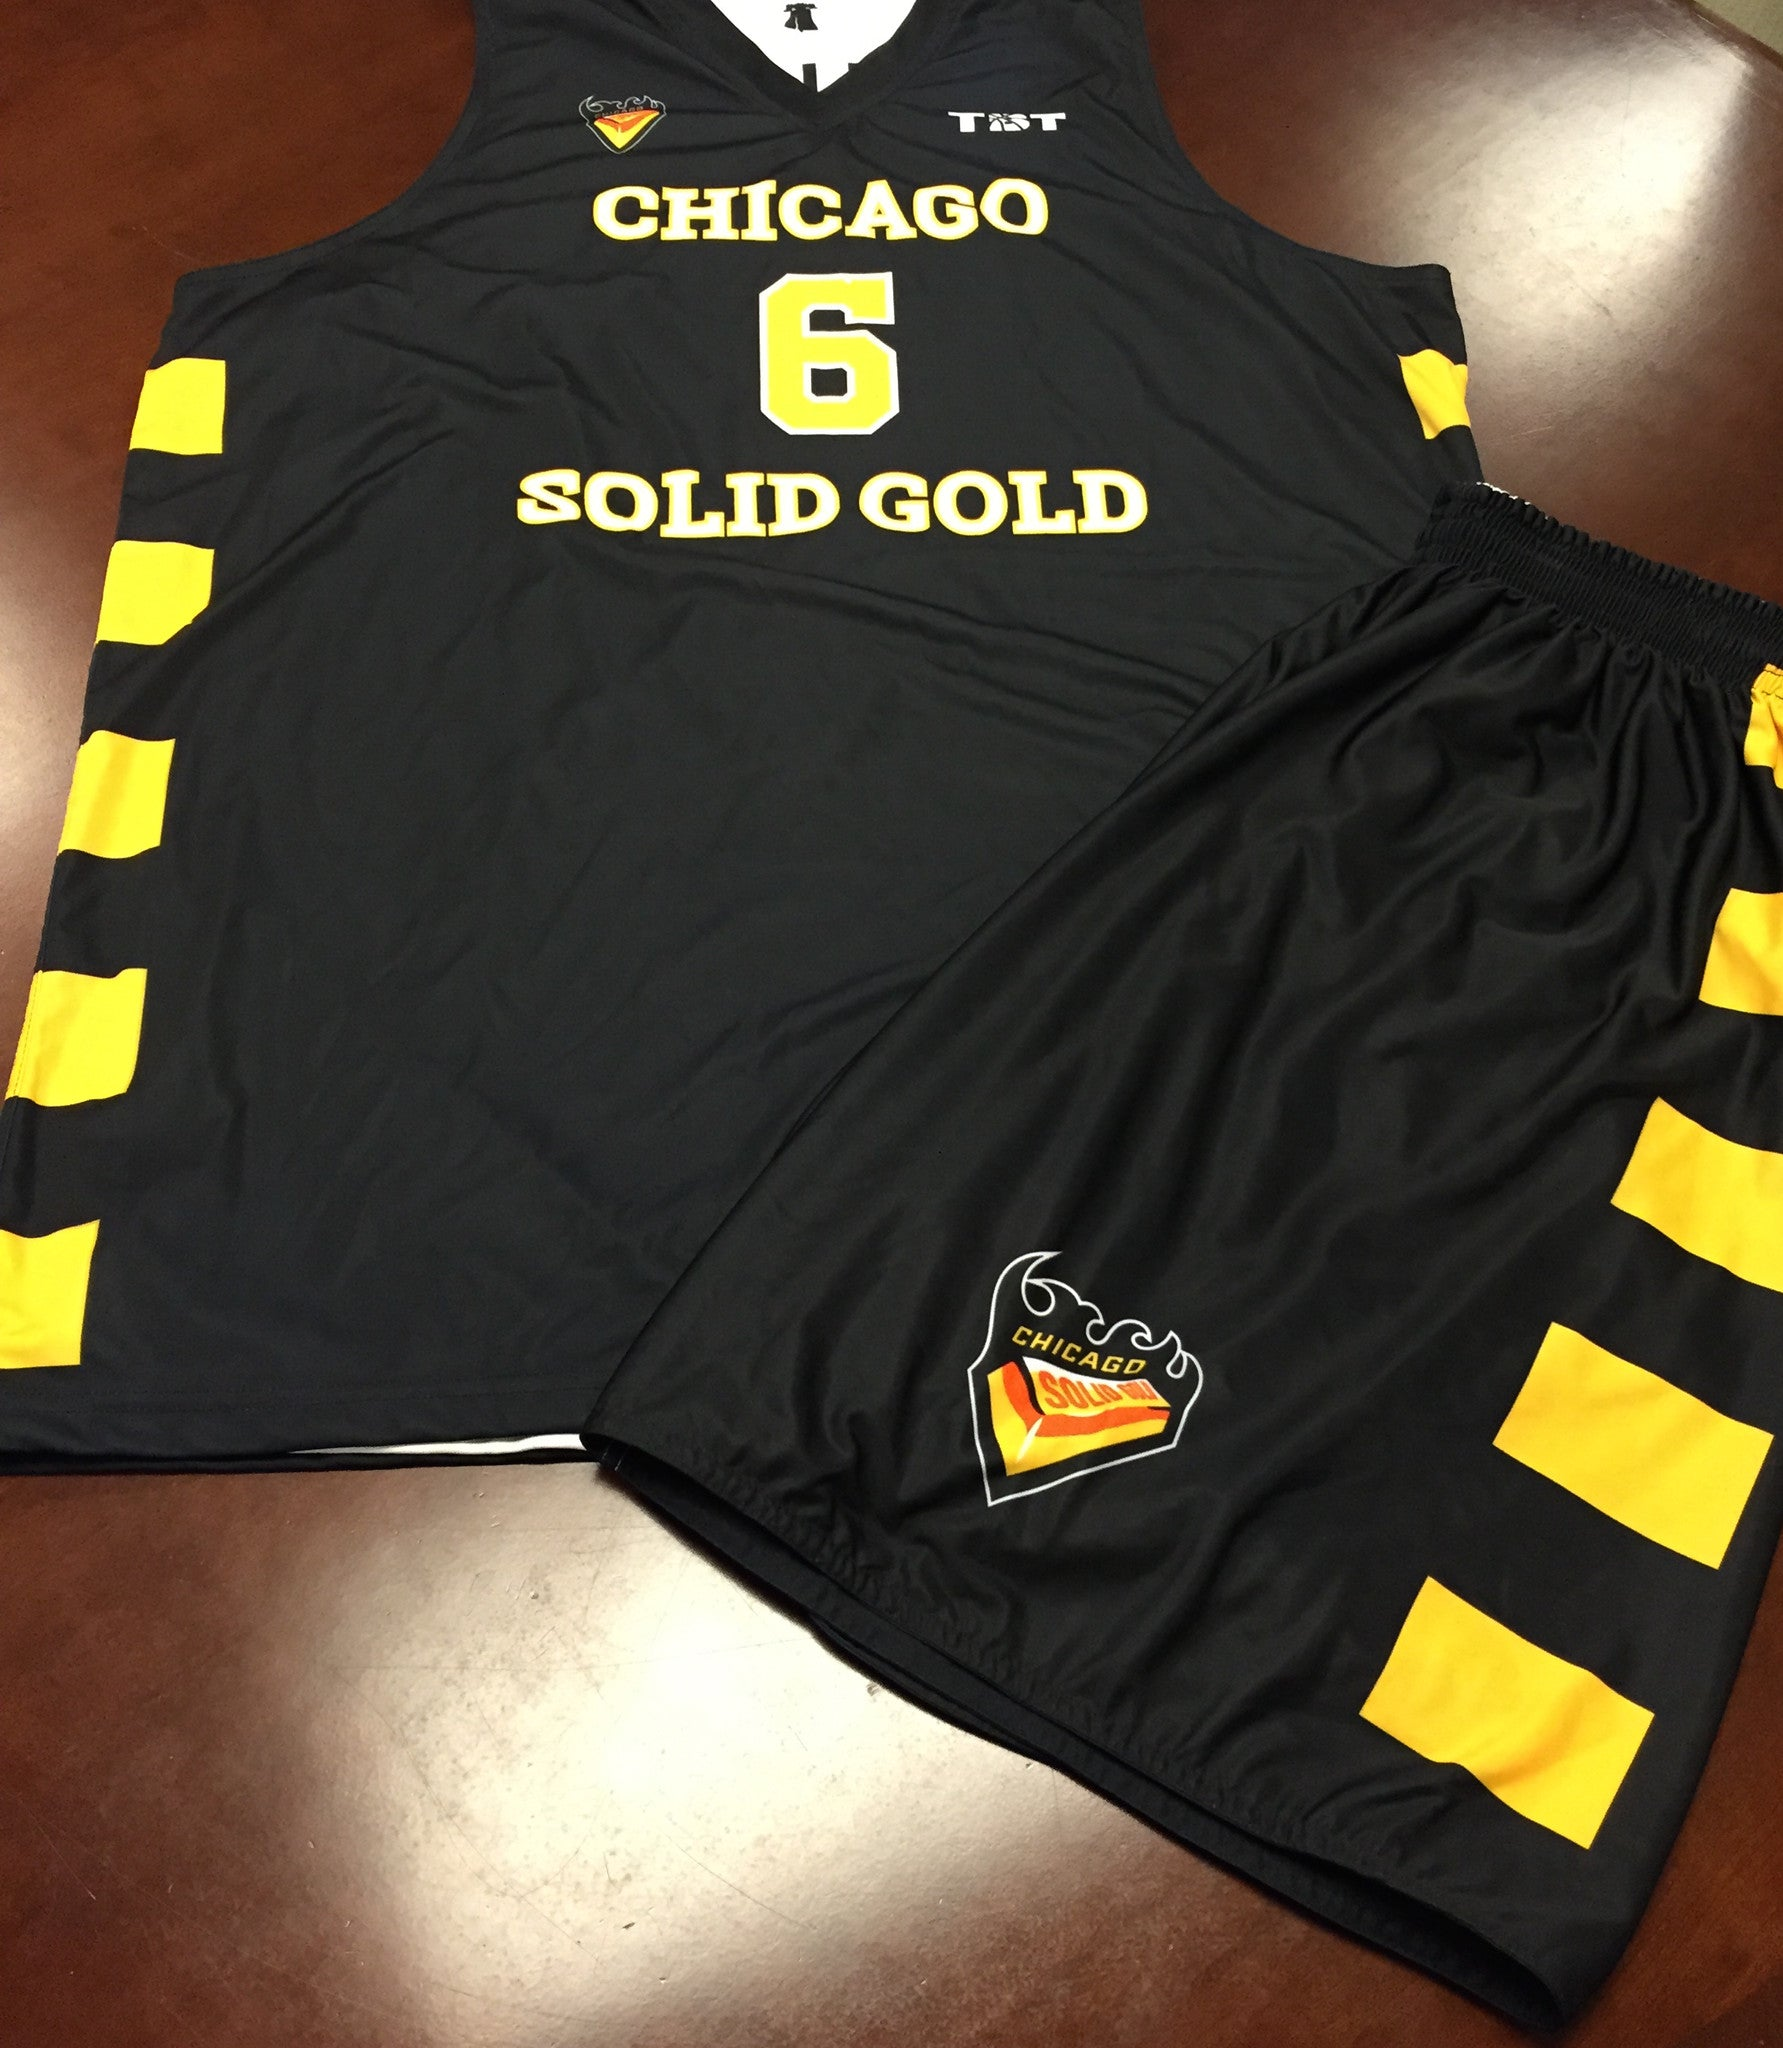 Chicago Solid Gold - 2014 Official Team Uniform (Jersey & Shorts)